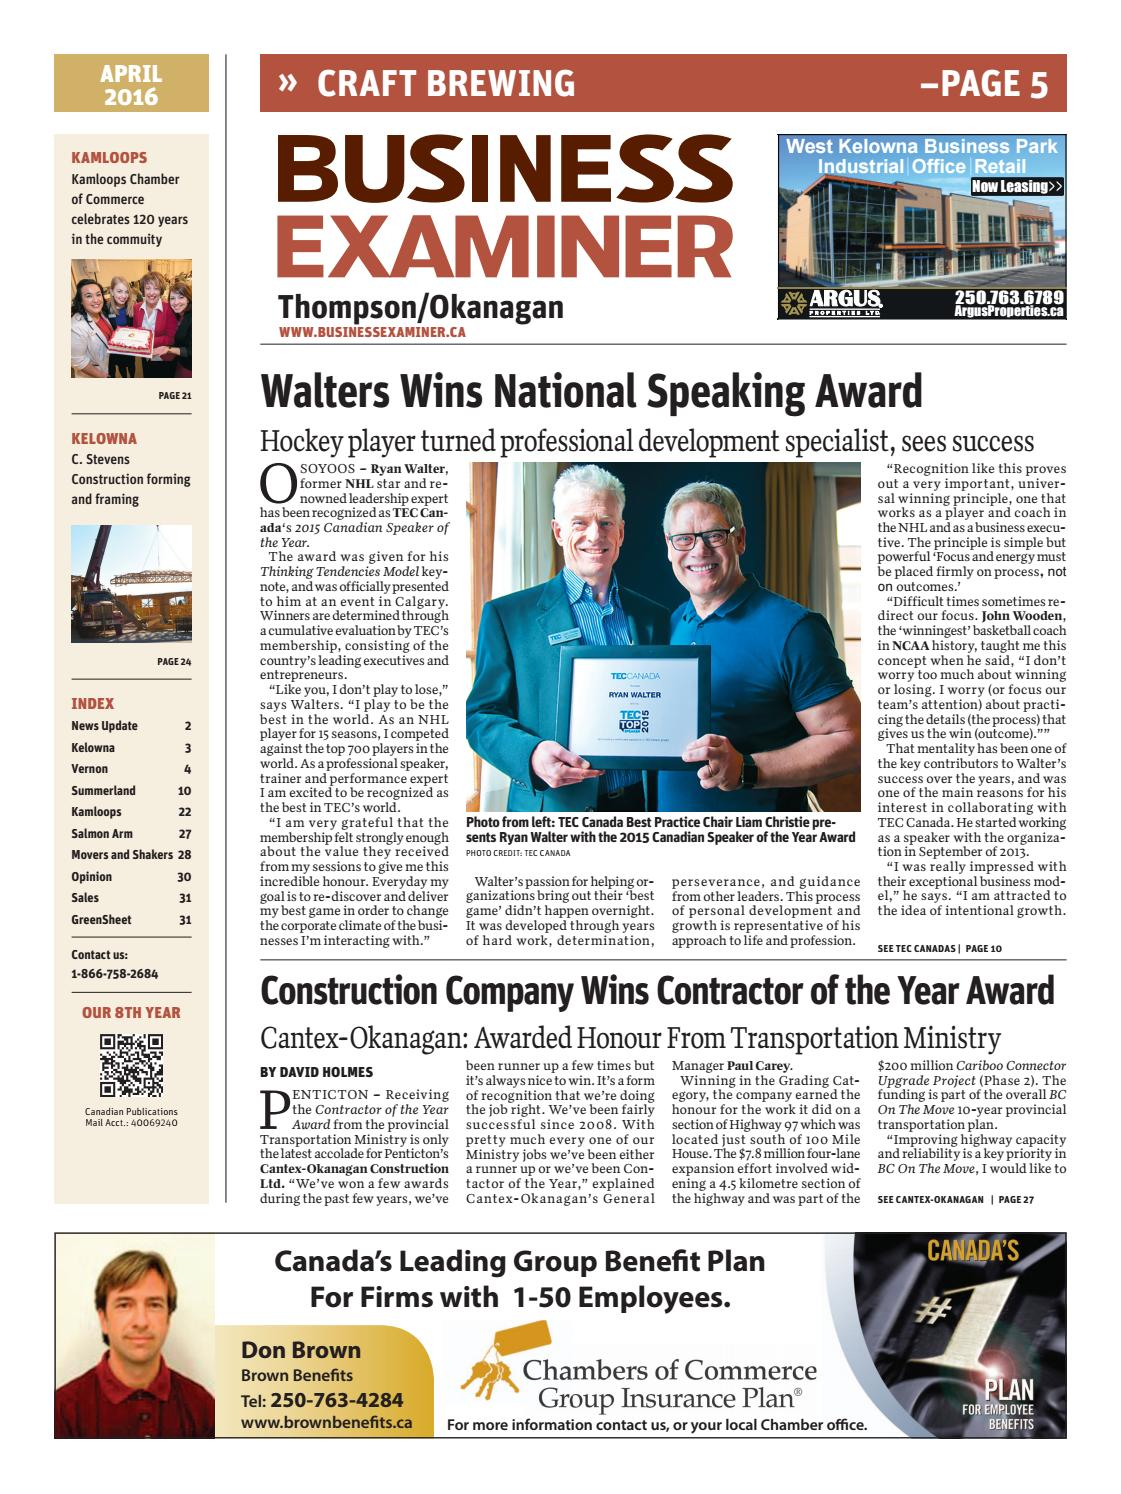 Business Examiner Thompson/Okanagan - April 2016 by Business